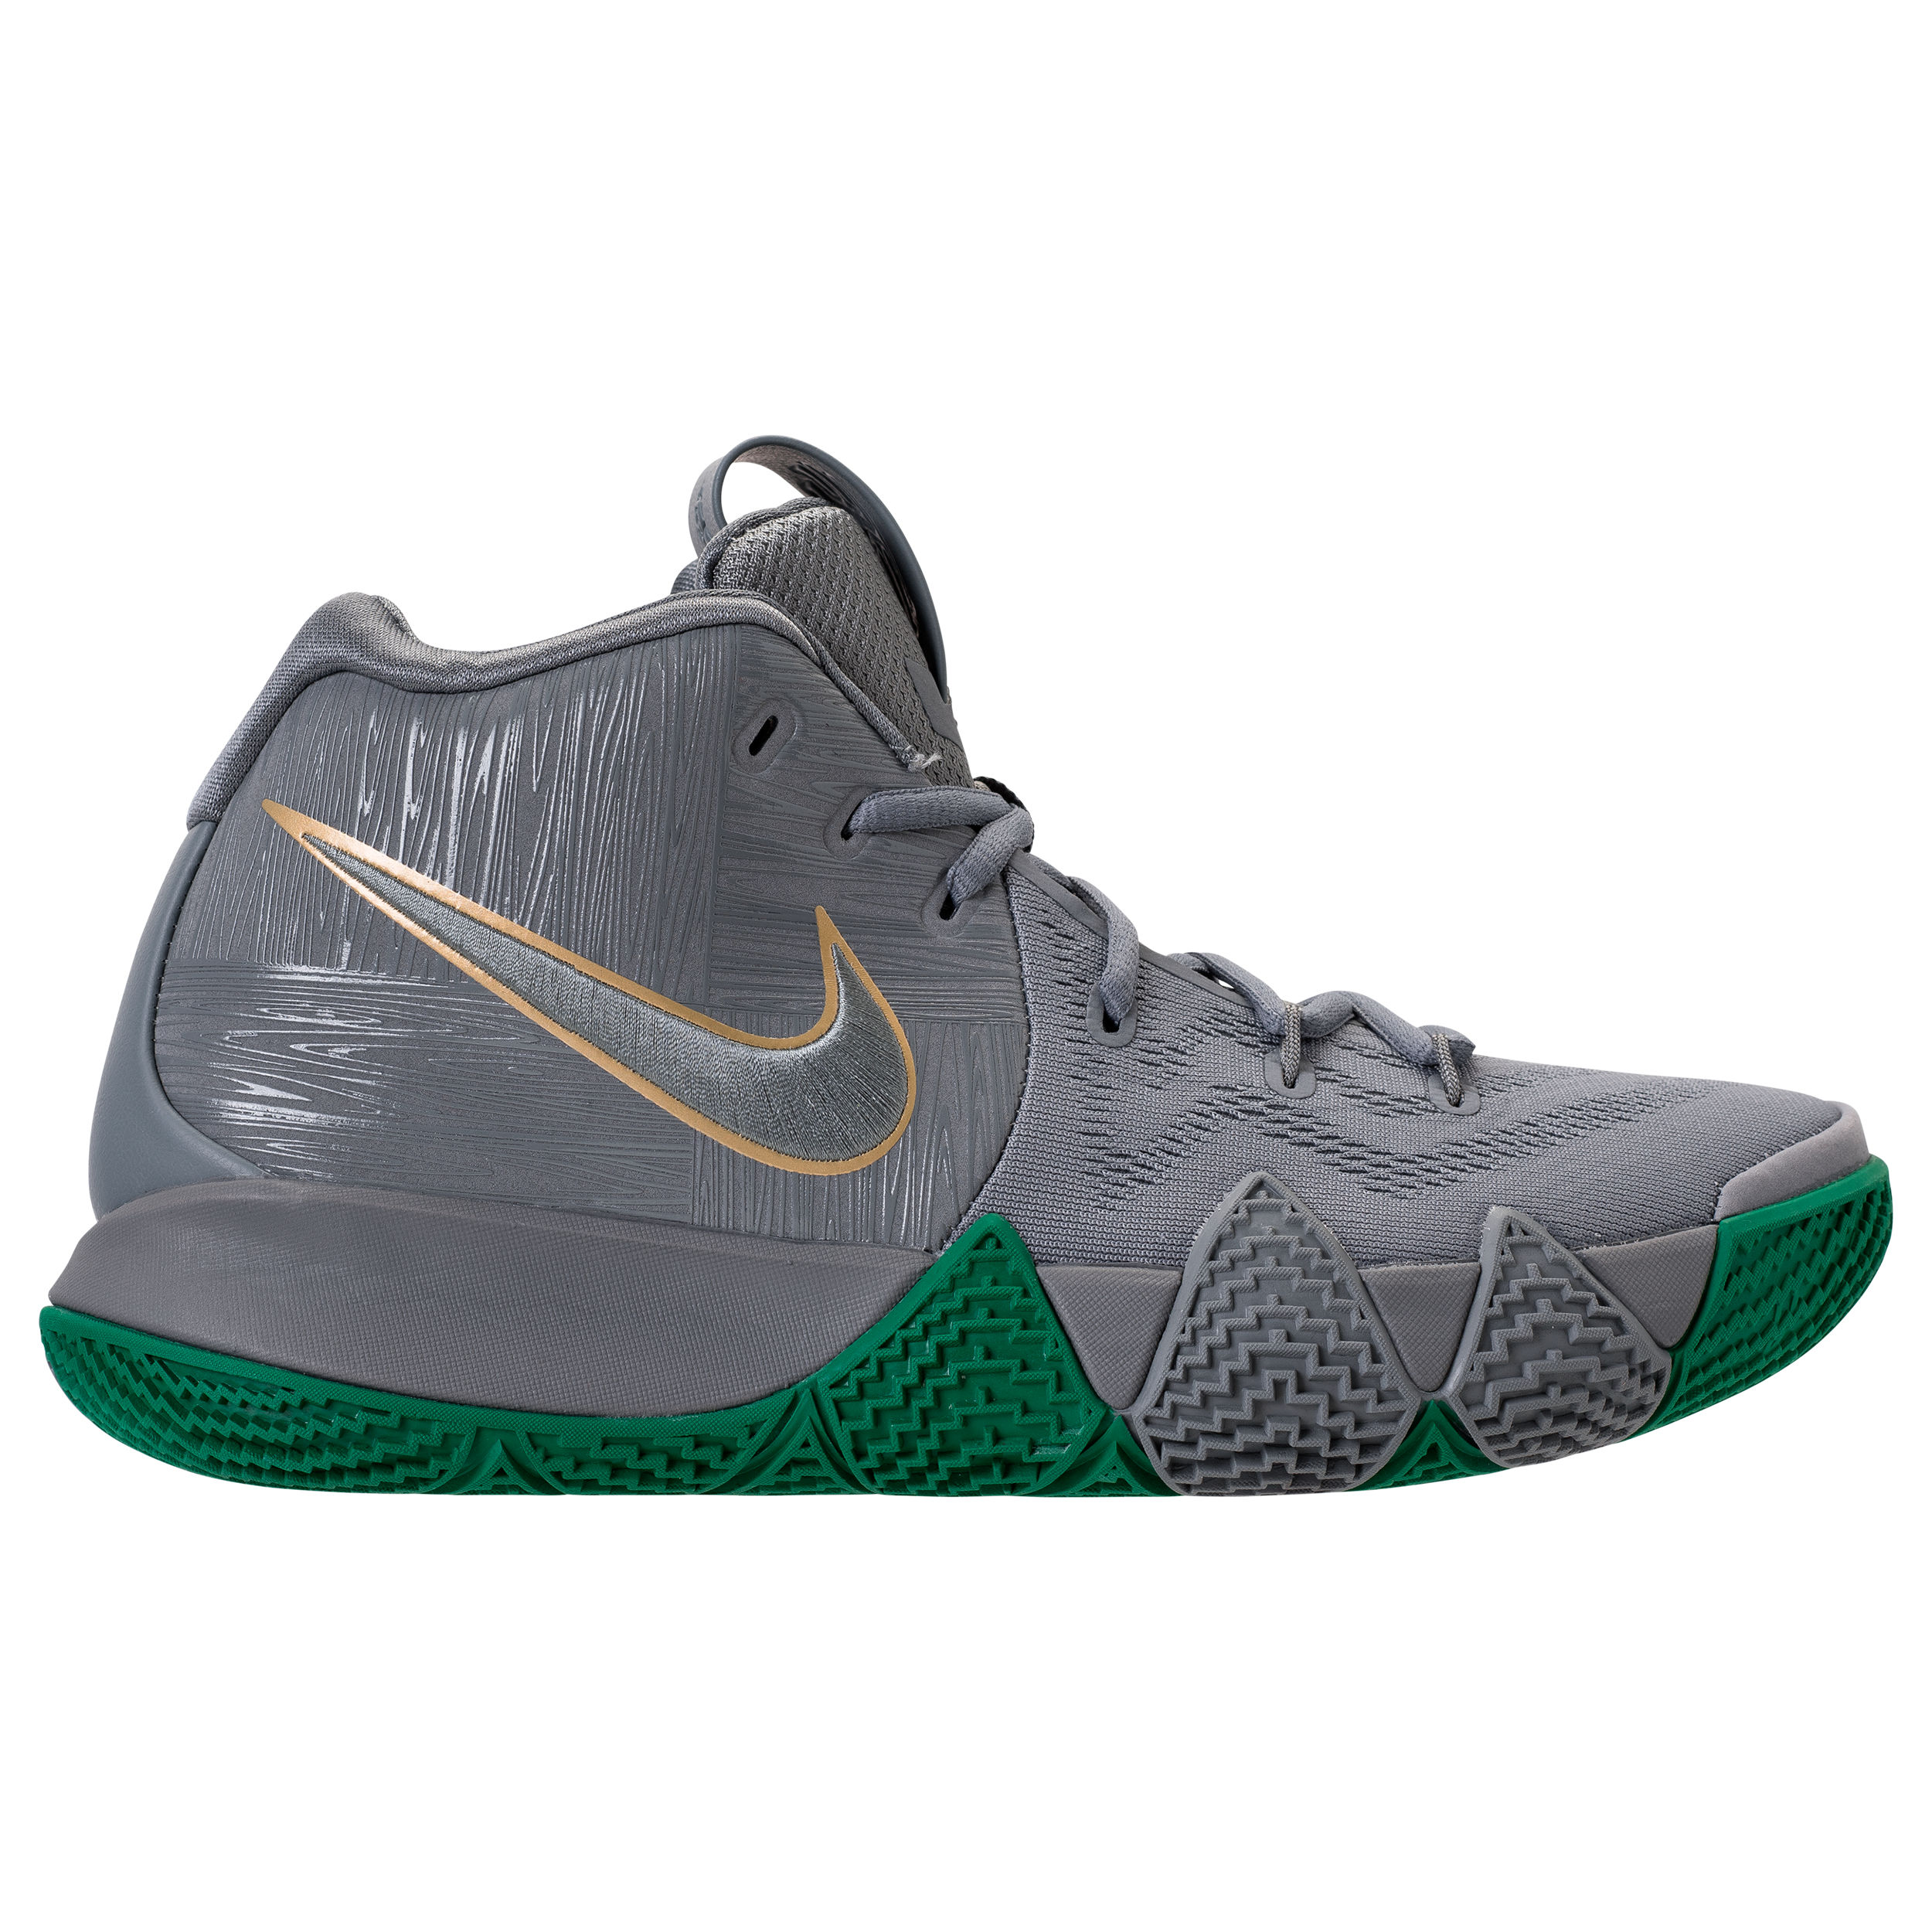 The Nike Kyrie 4 'City of Guardians' Releases Next Week at ...